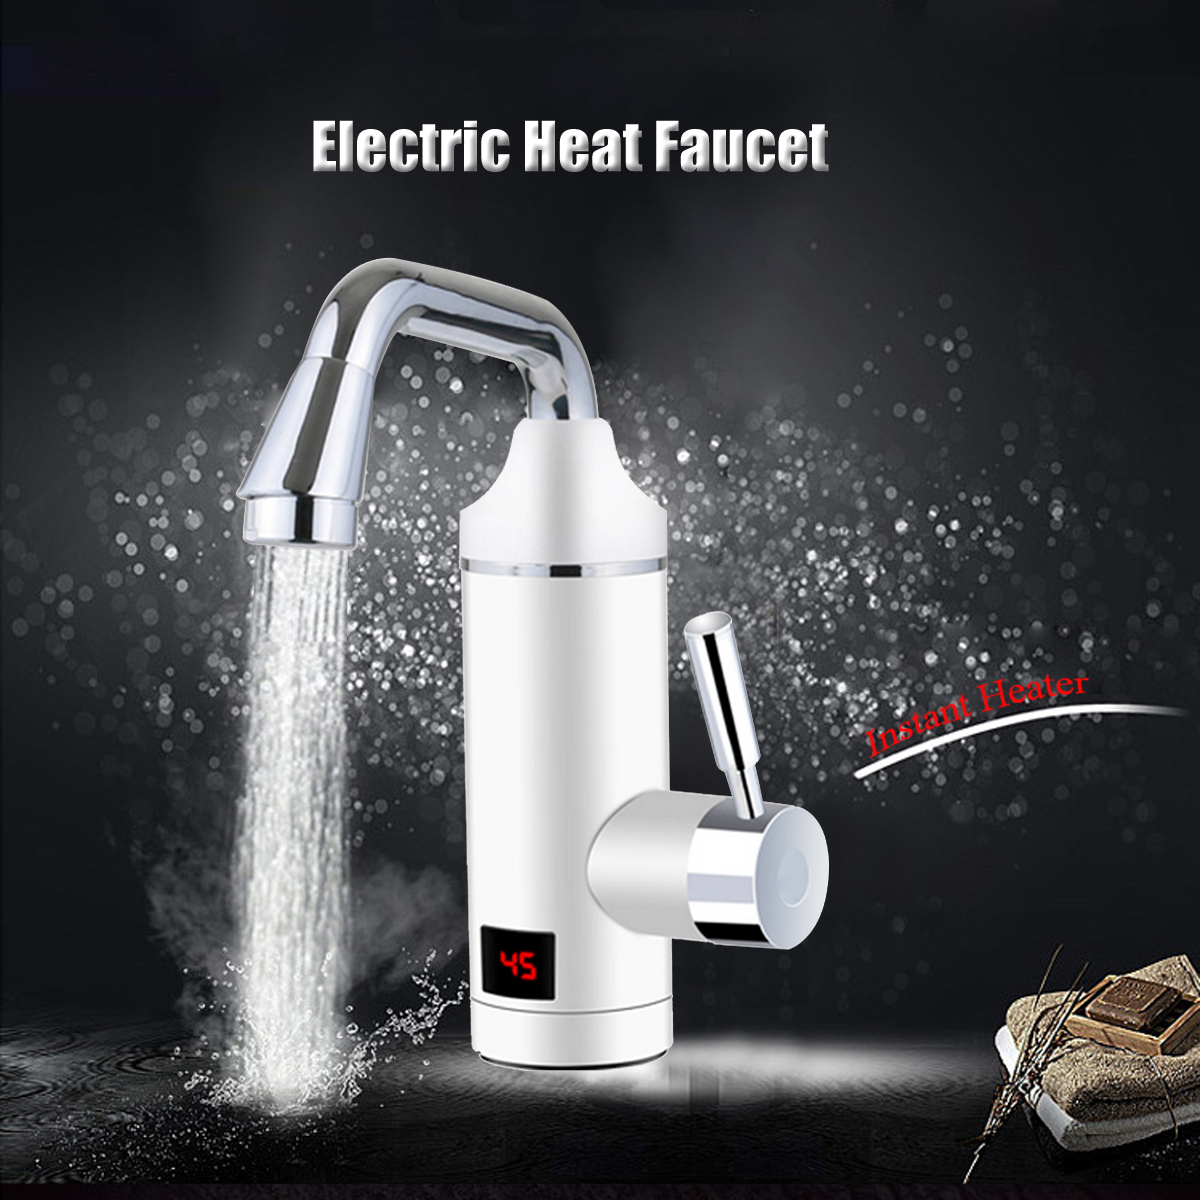 220V 2000W Household Electric Water Faucet Tap Hot Water Heater Instant